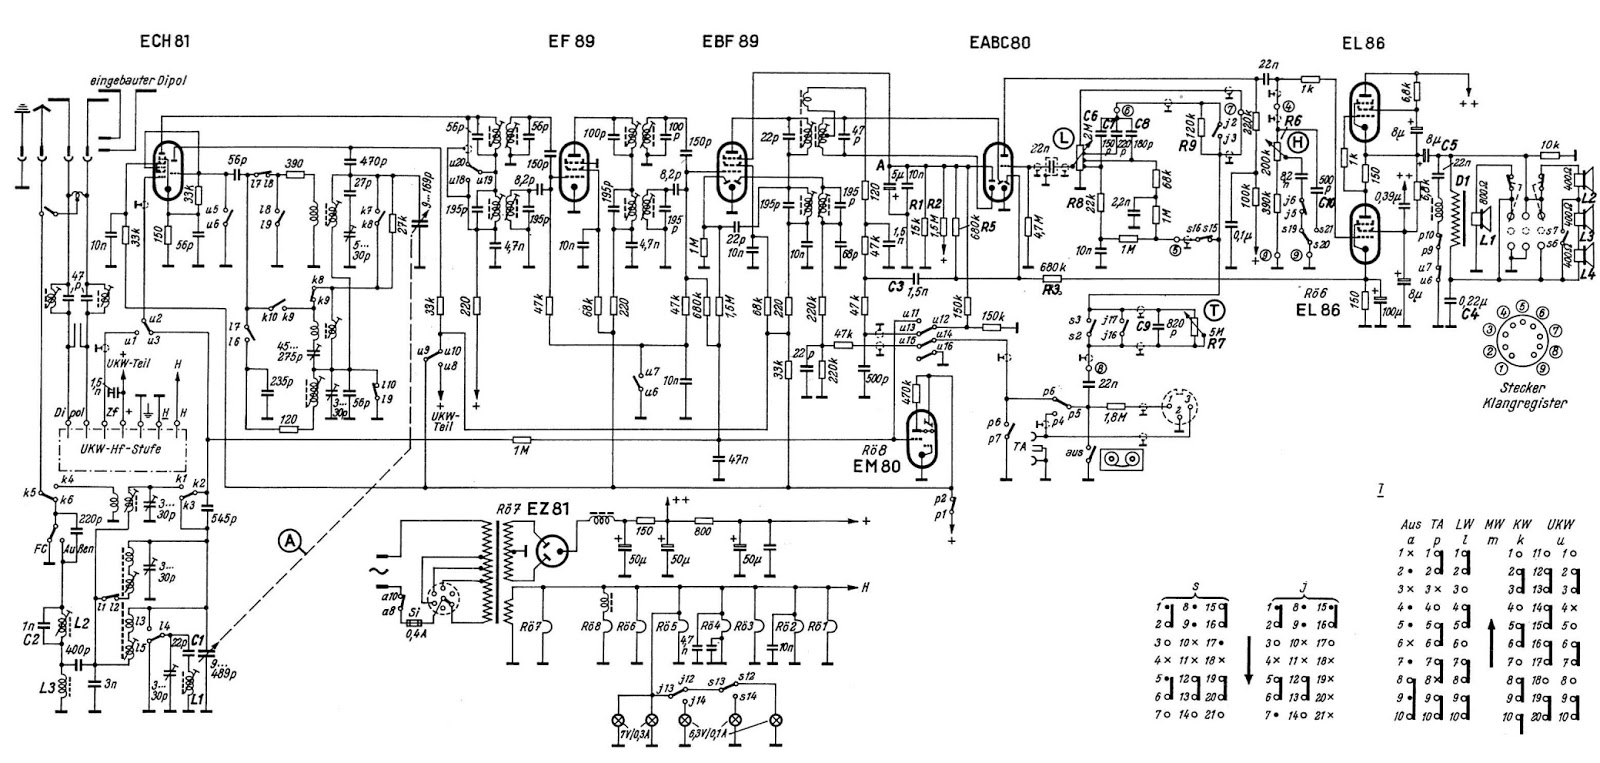 Install Kitchen Light 85997 besides Vcr Player Schematics as well Liebert Wiring Diagram in addition How To Install A Wifi Thermostat Without A C Wire together with Eim Actuator Wiring Diagram. on emerson radio schematics diagrams